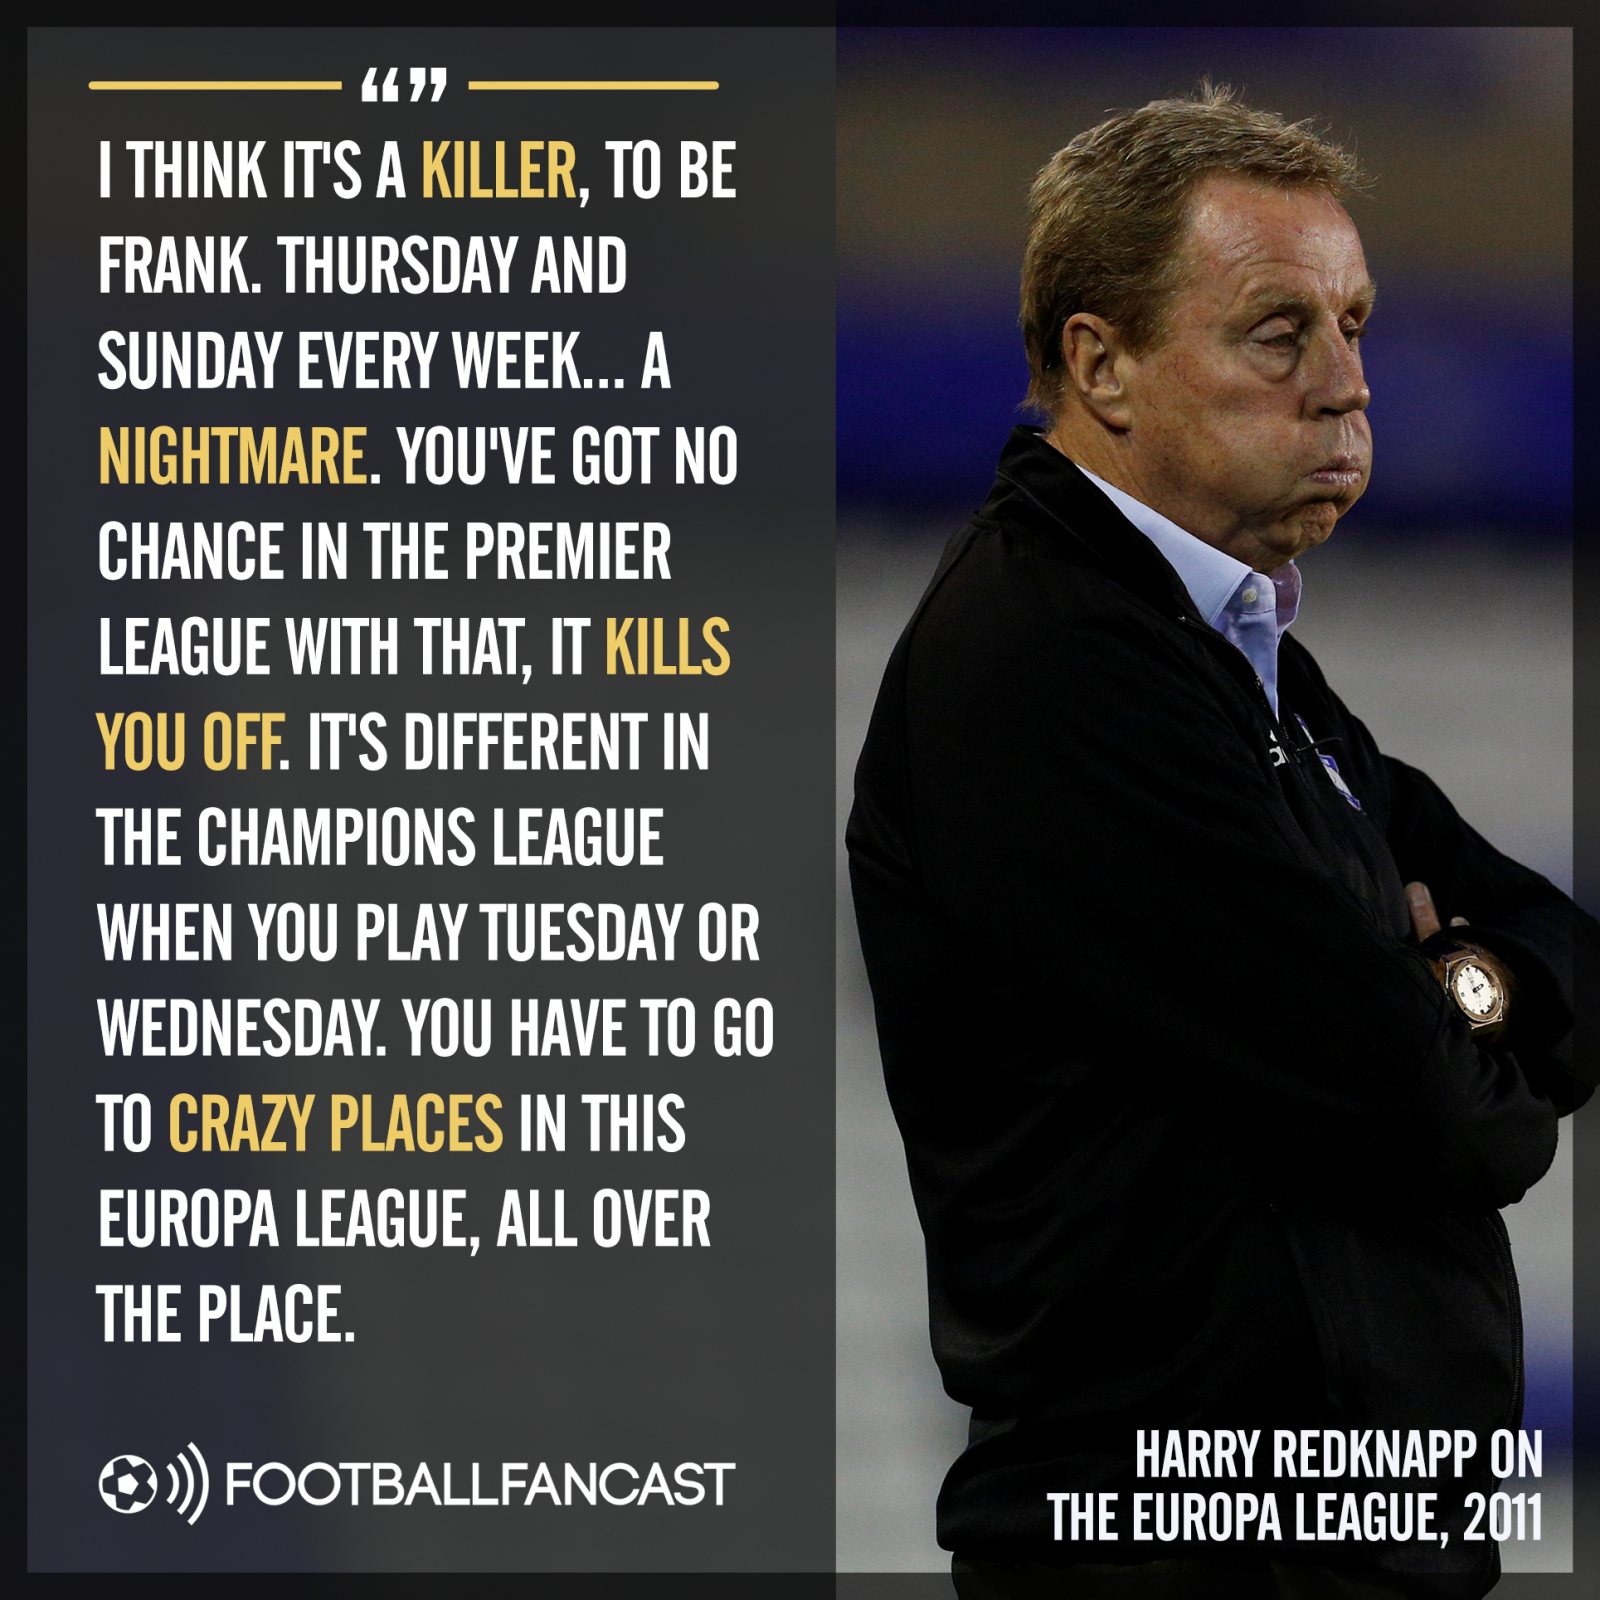 Harry Redknapp's comments on the Europa League